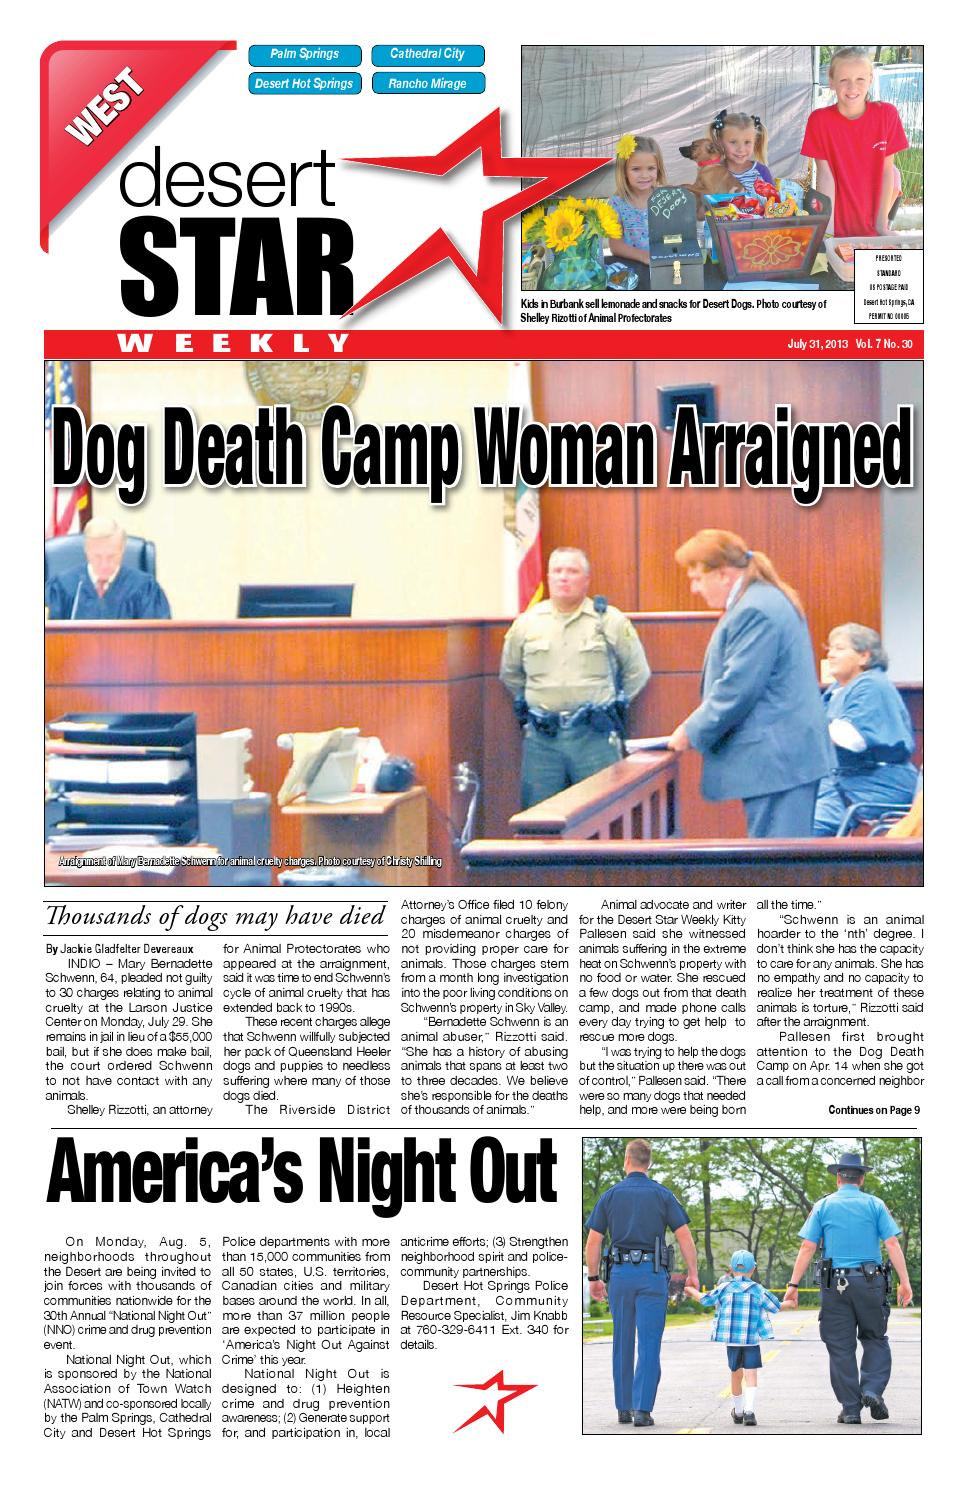 Dstarweekly july 31 2013 print dina final 6pm web by The Desert Star Weekly  - issuu 7a14f2df7